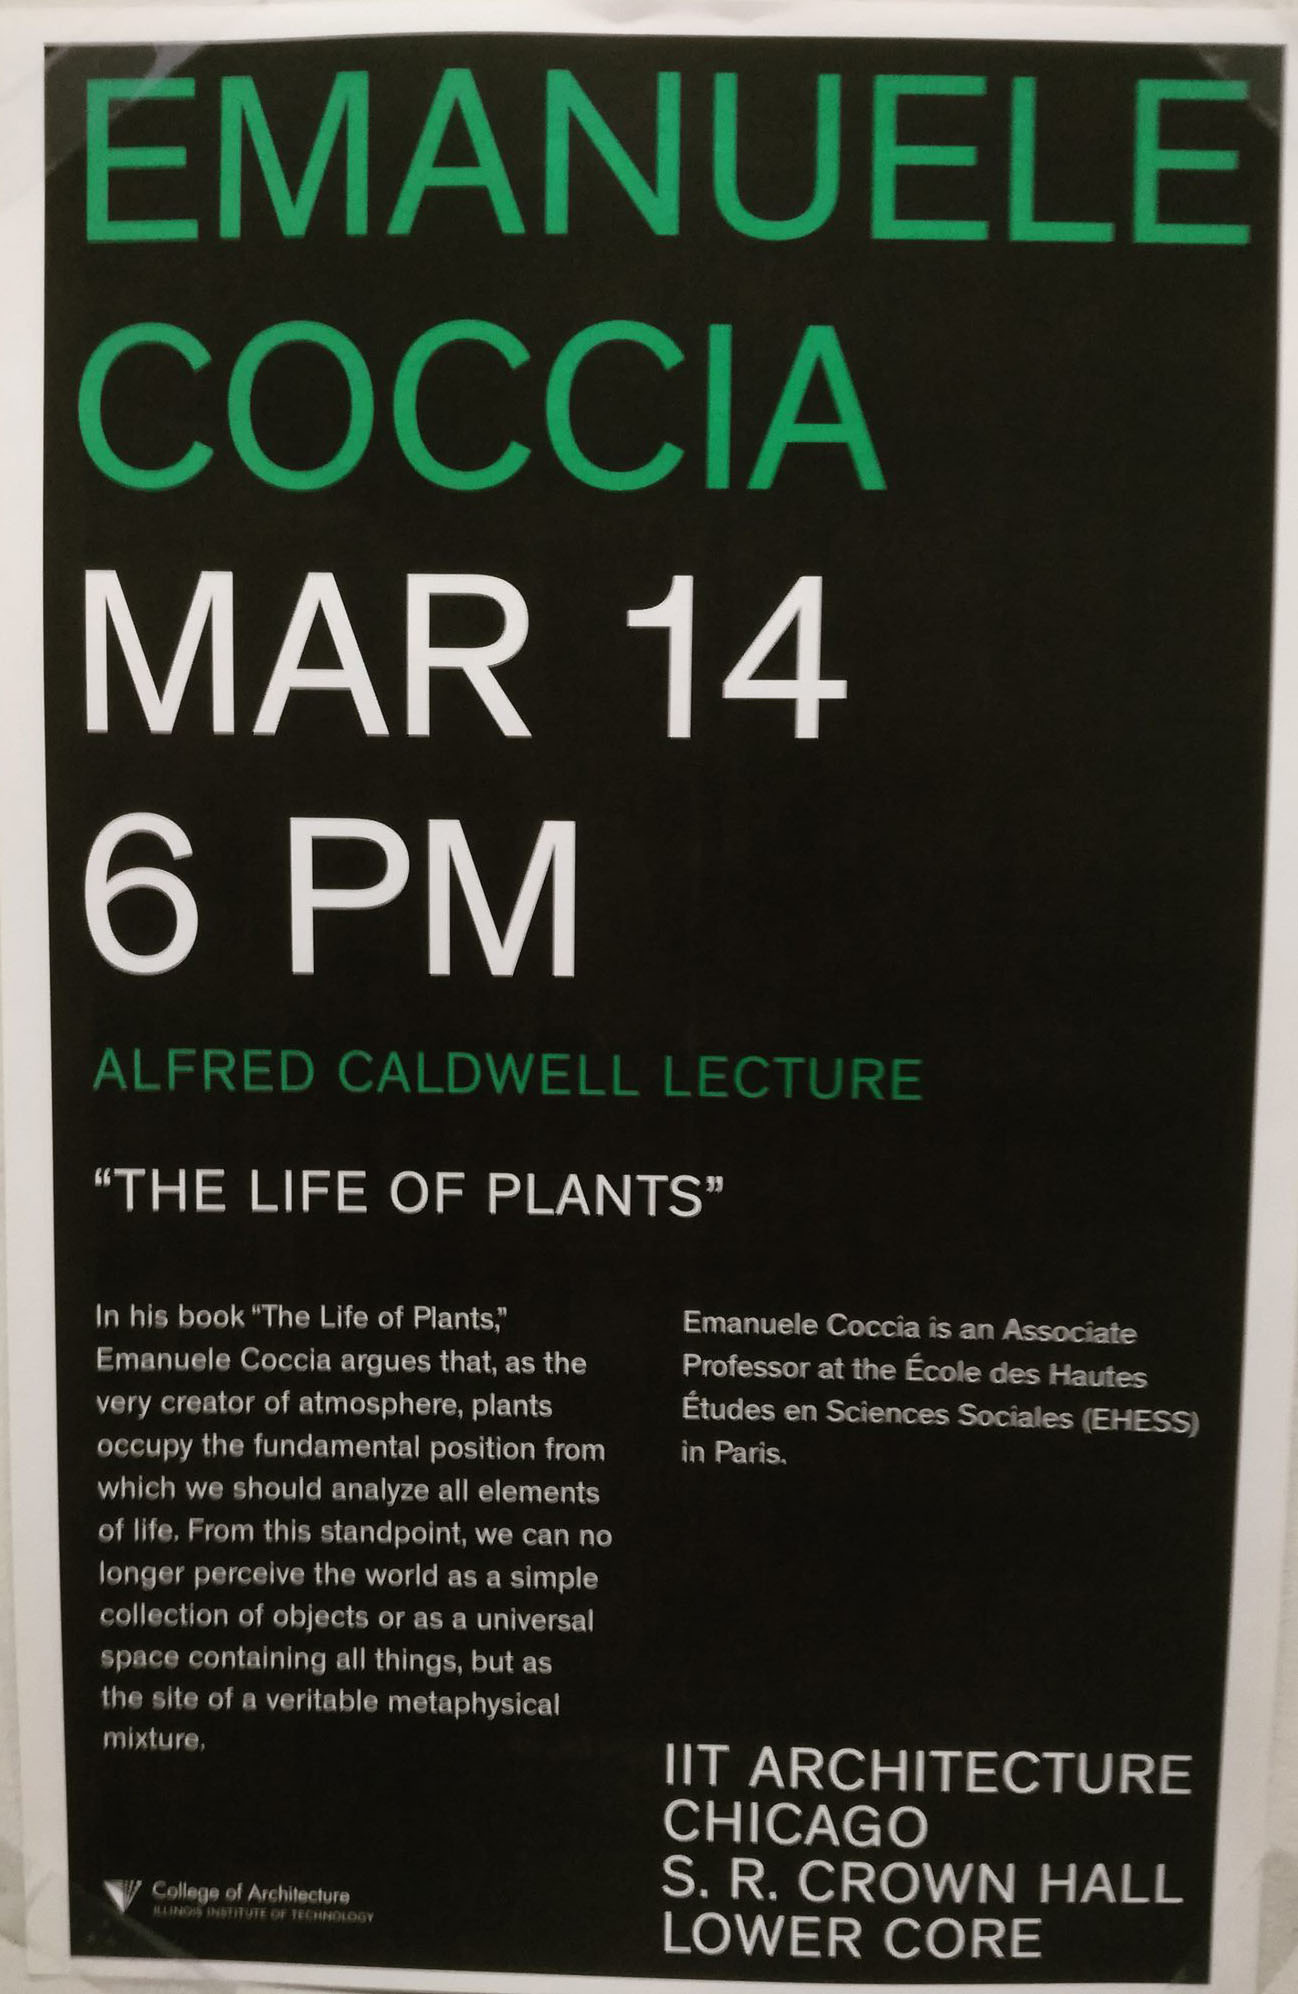 Conférence d'Emanuele Coccia à Chicago : The Life of Plants